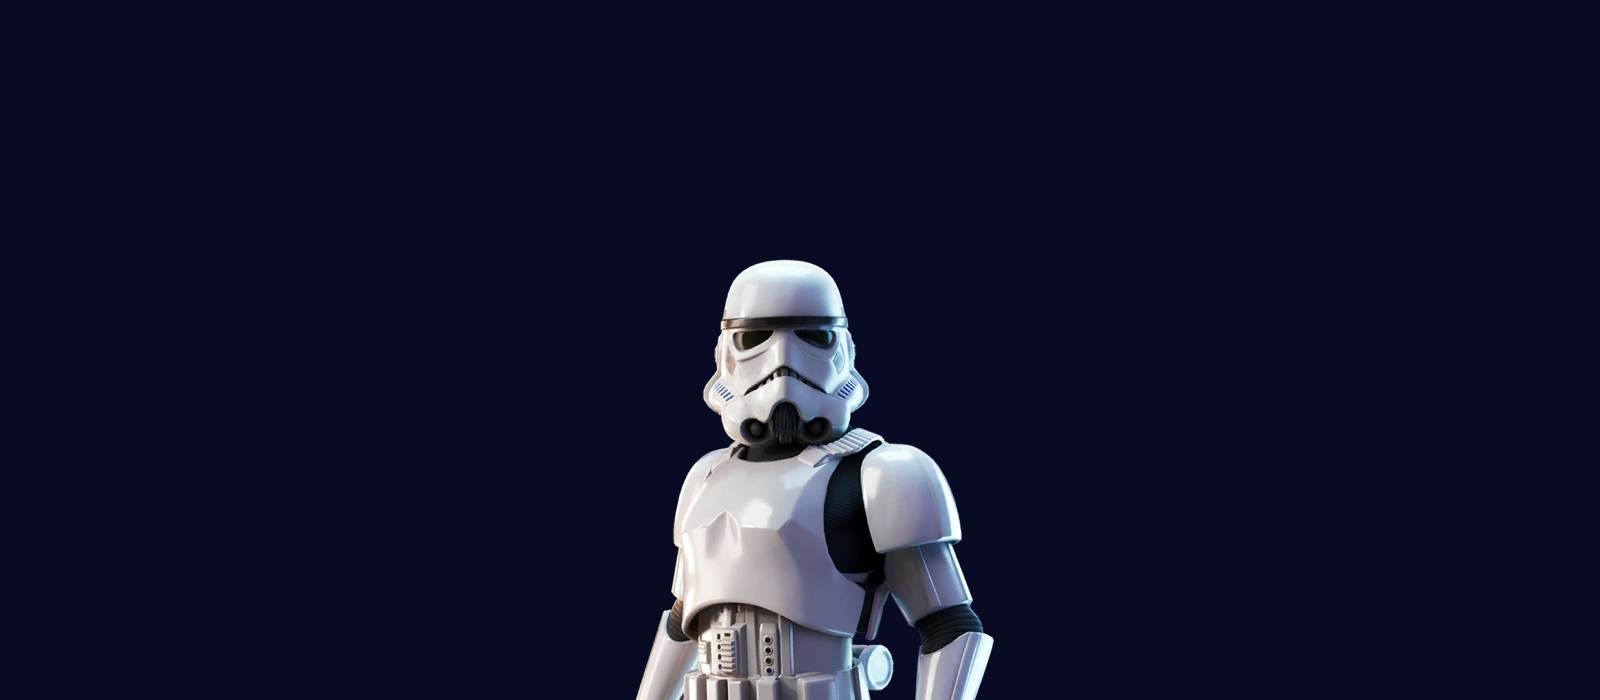 This is an image of a Star Wars Stormtrooper.